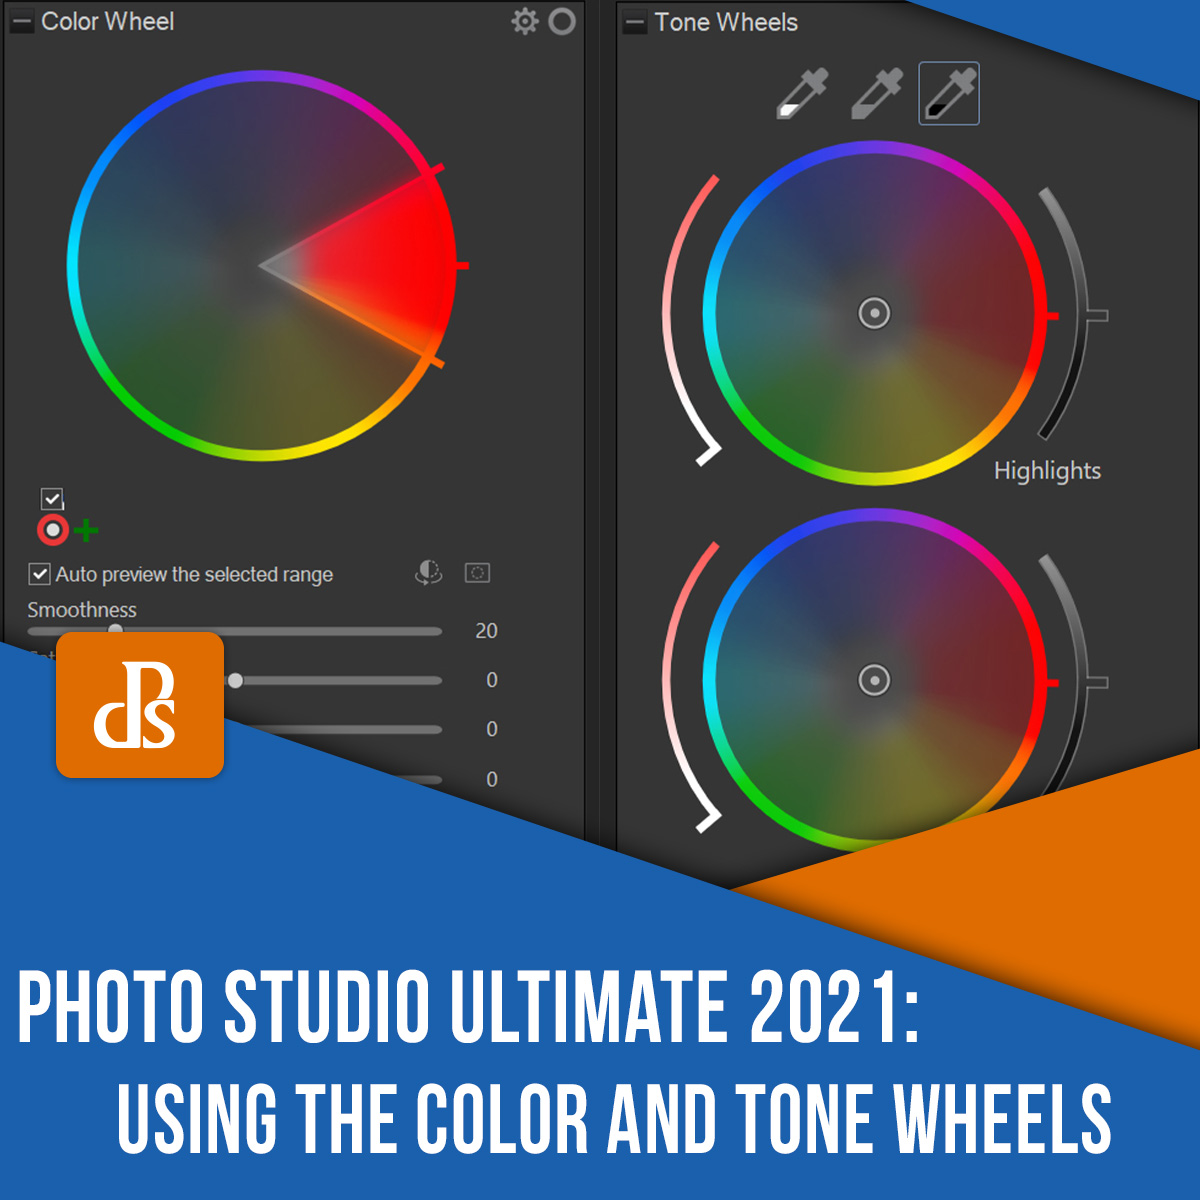 ACDSee Photo Studio Ultimate Color and Tone Wheels